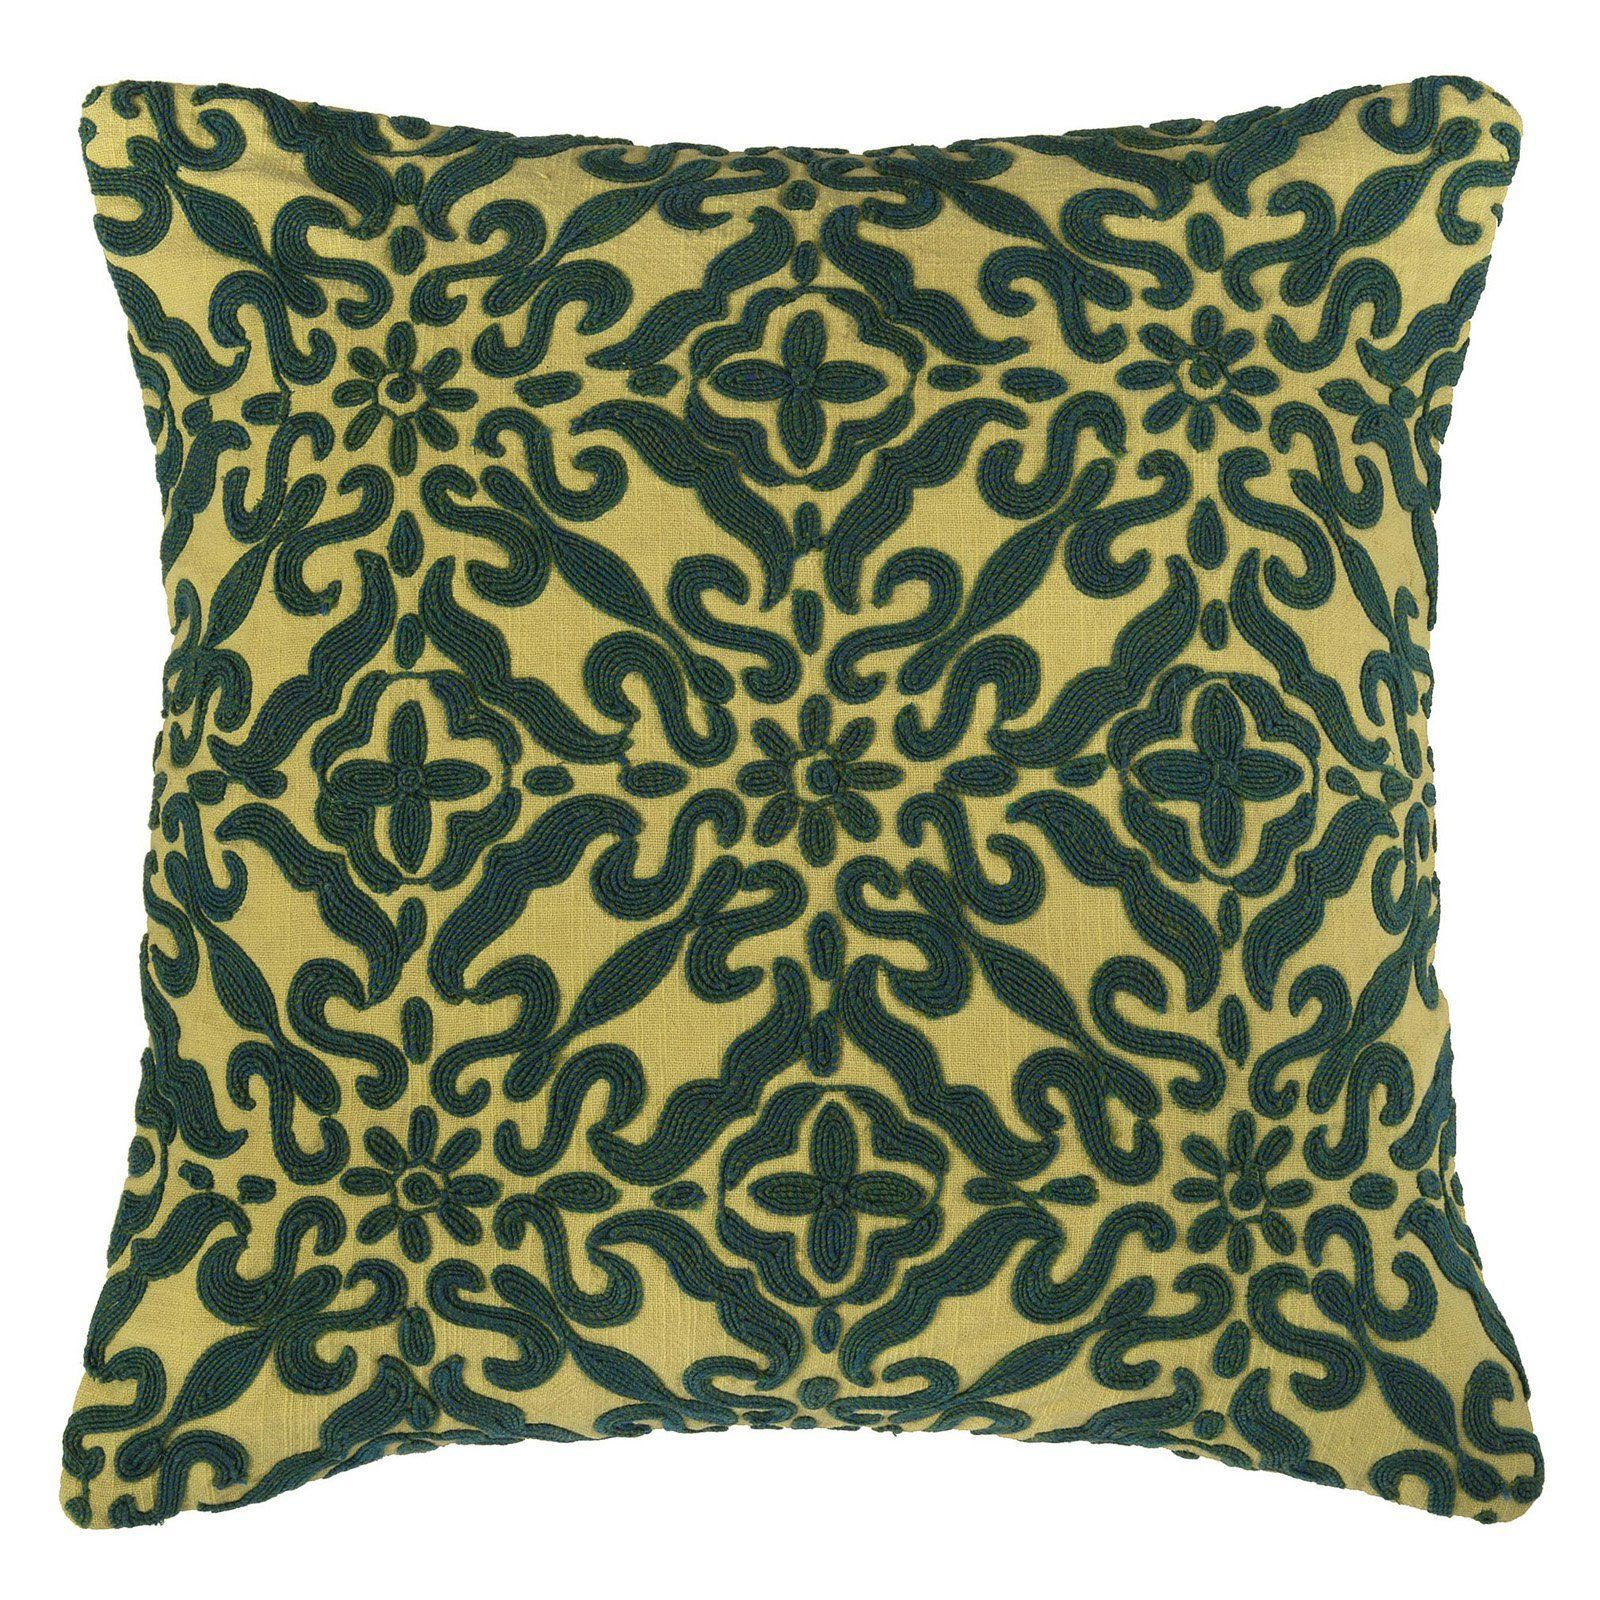 Rizzy home hand embroidery green scrolls decorative throw pillow